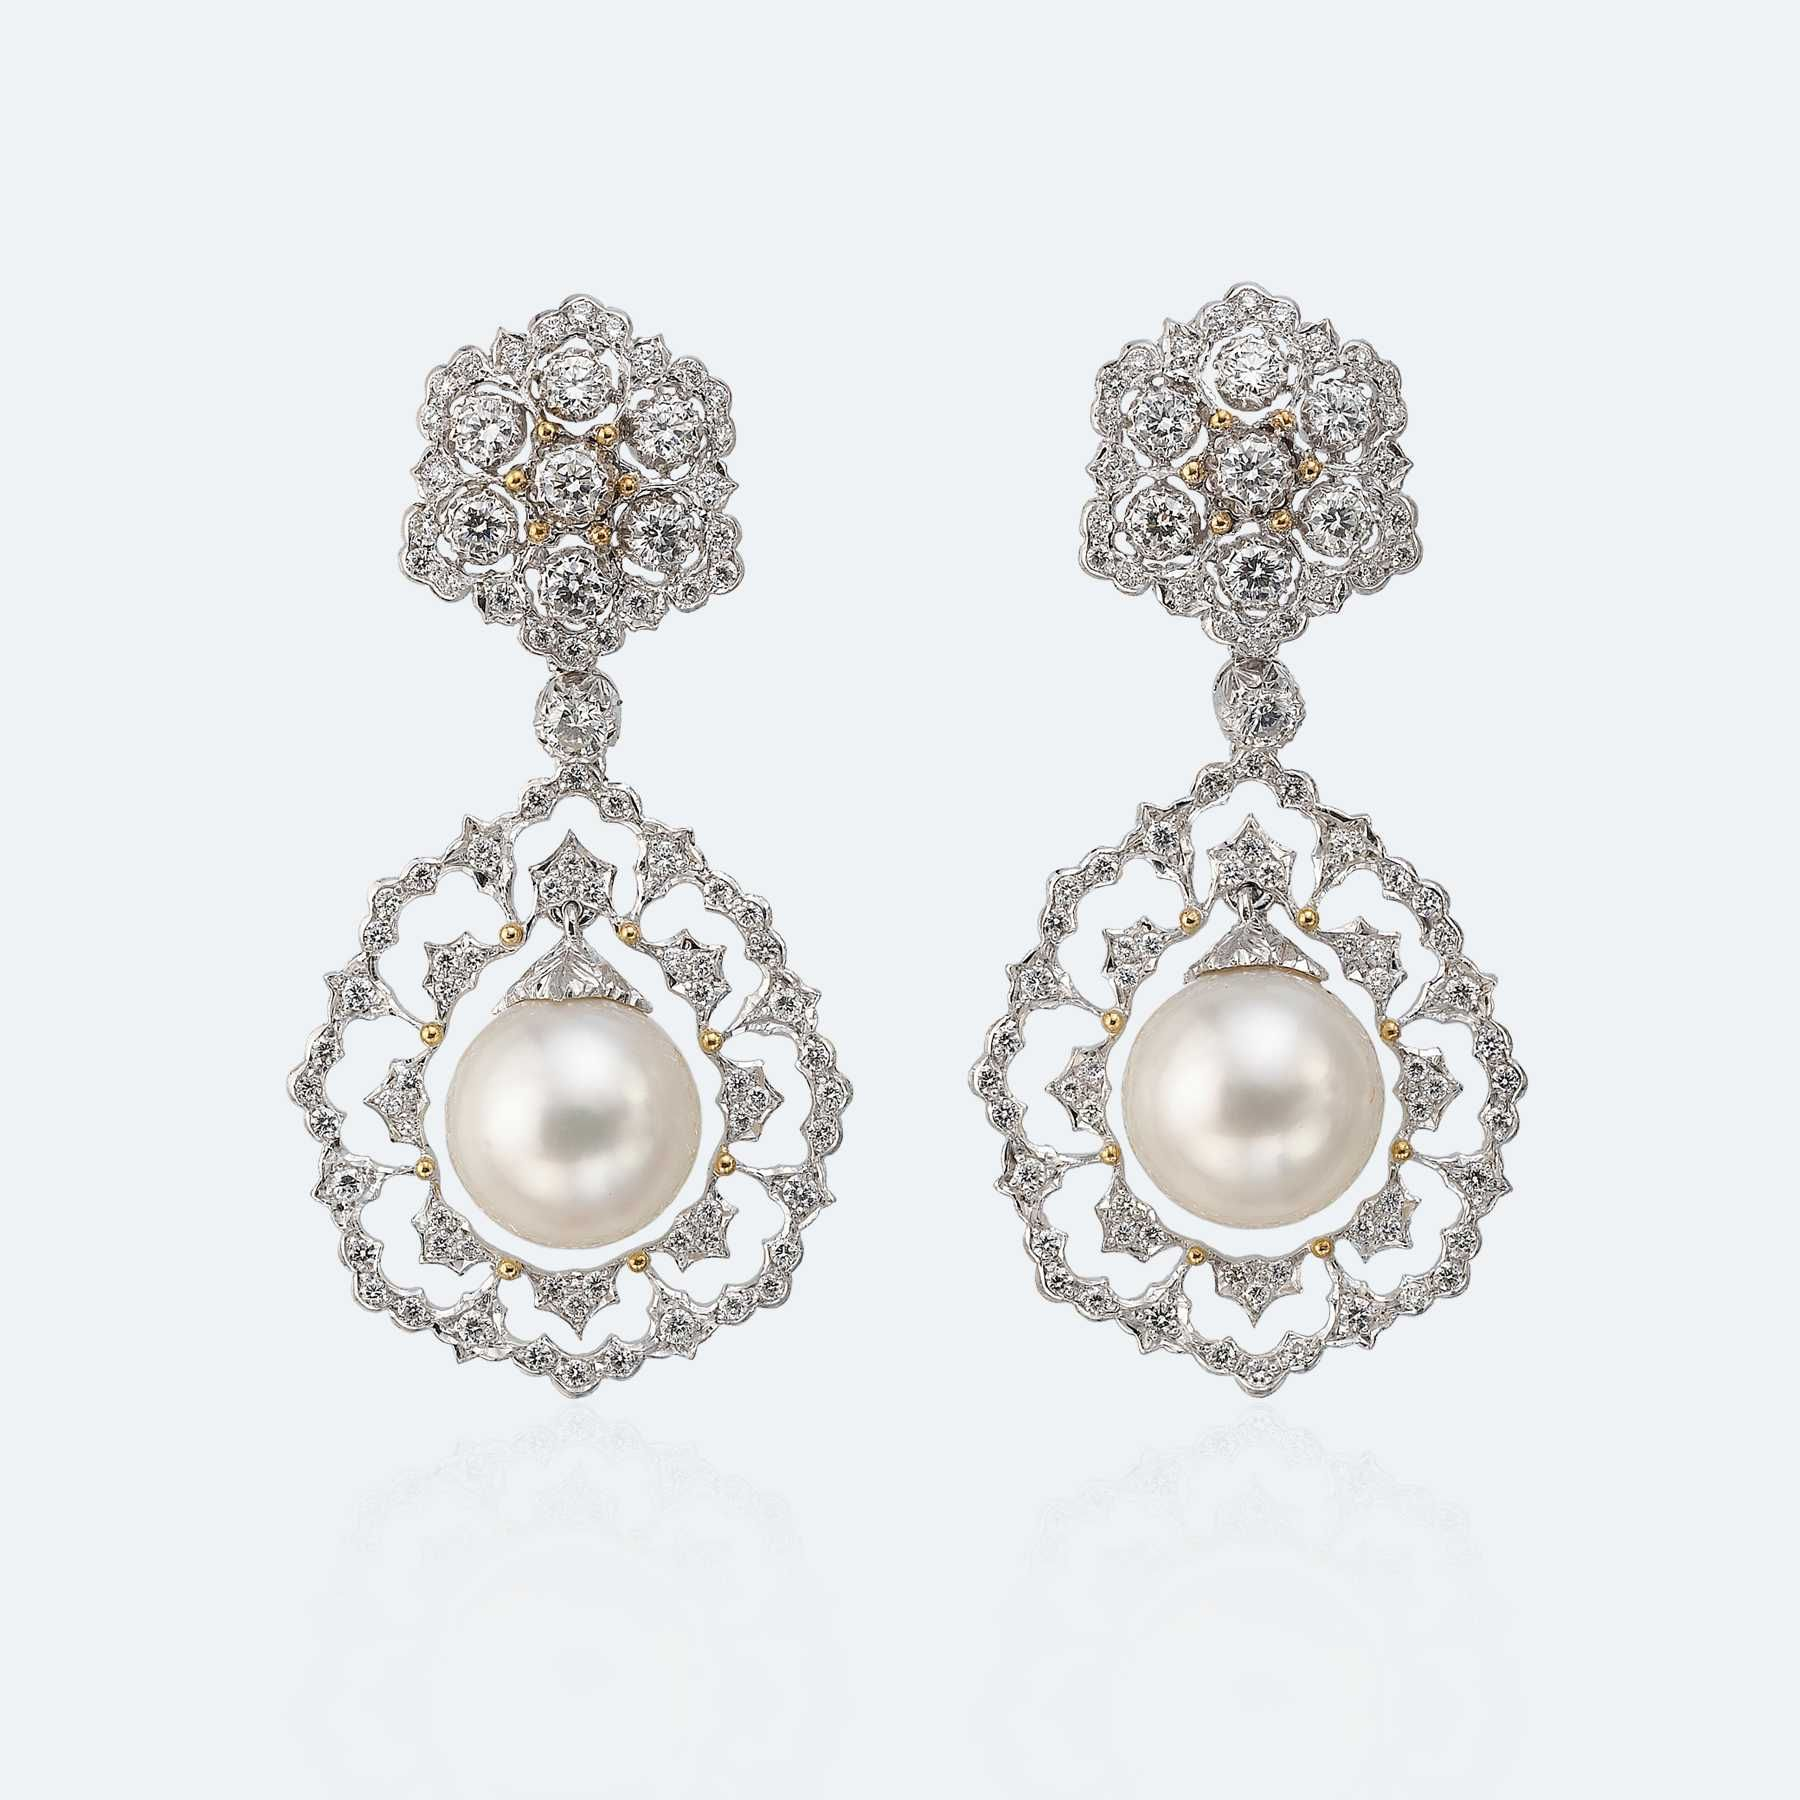 Pendant earrings in white and yellow gold with pearls and diamonds